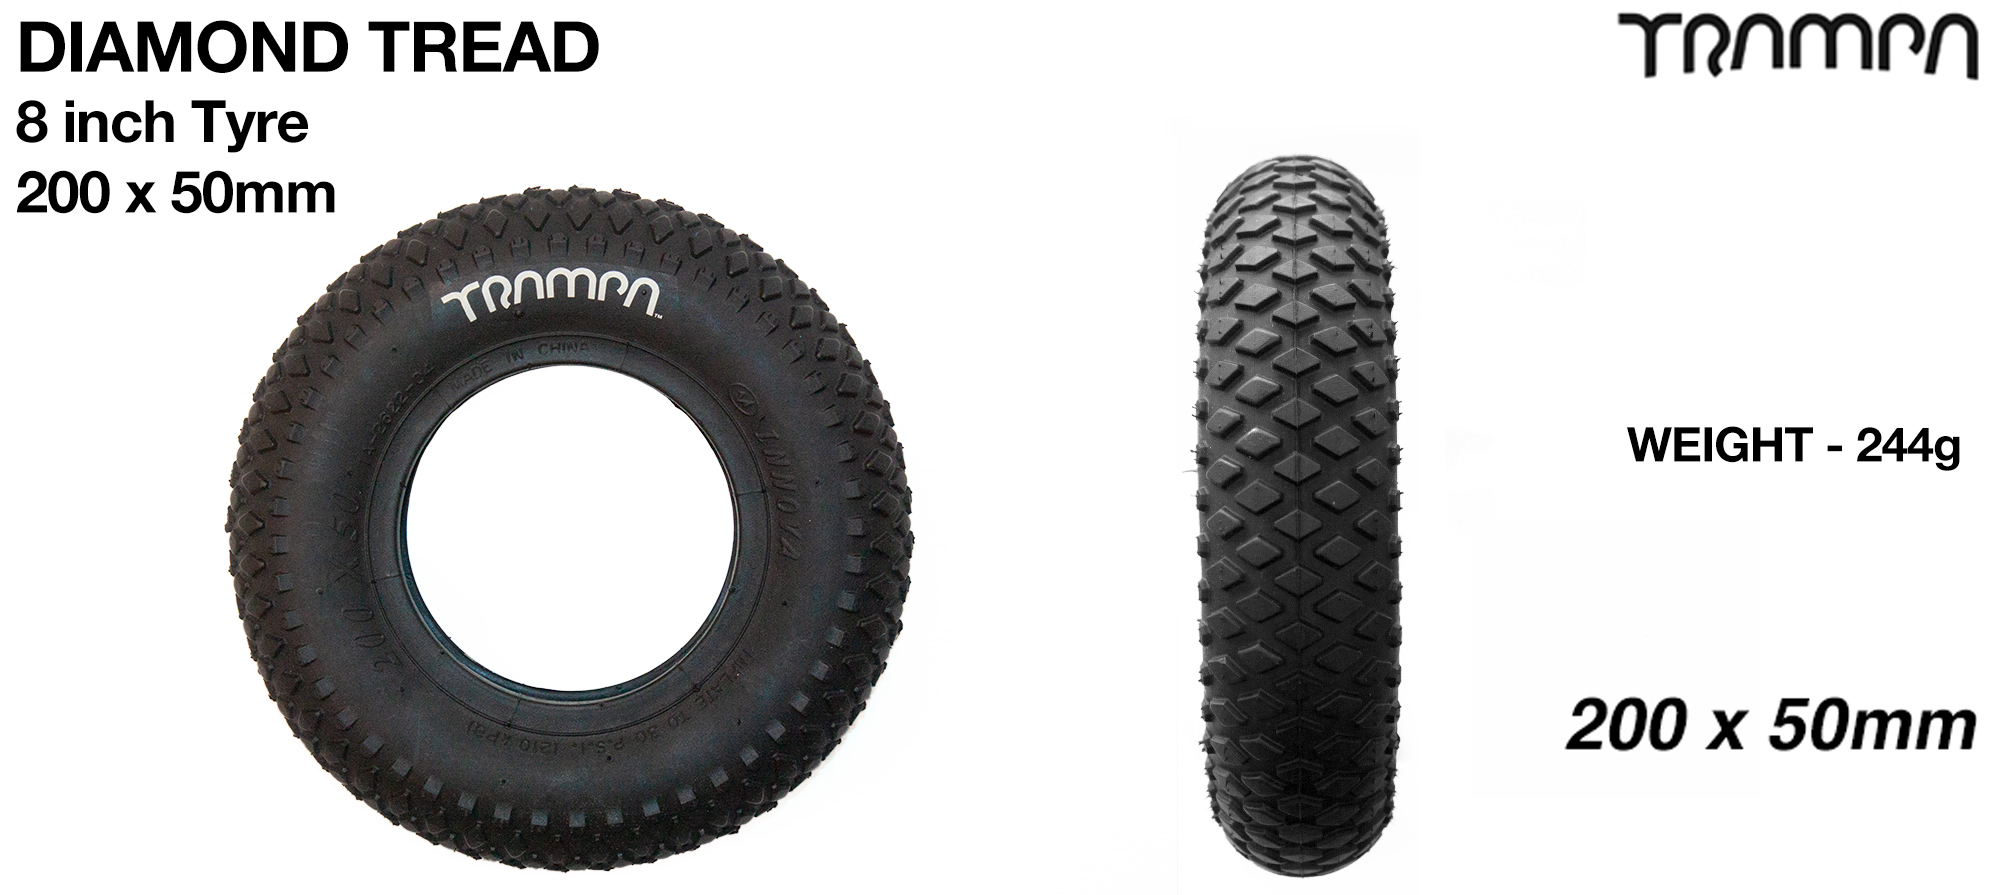 PRIMO STRIKER - 8 Inch Hard Packed Dirt Tyres